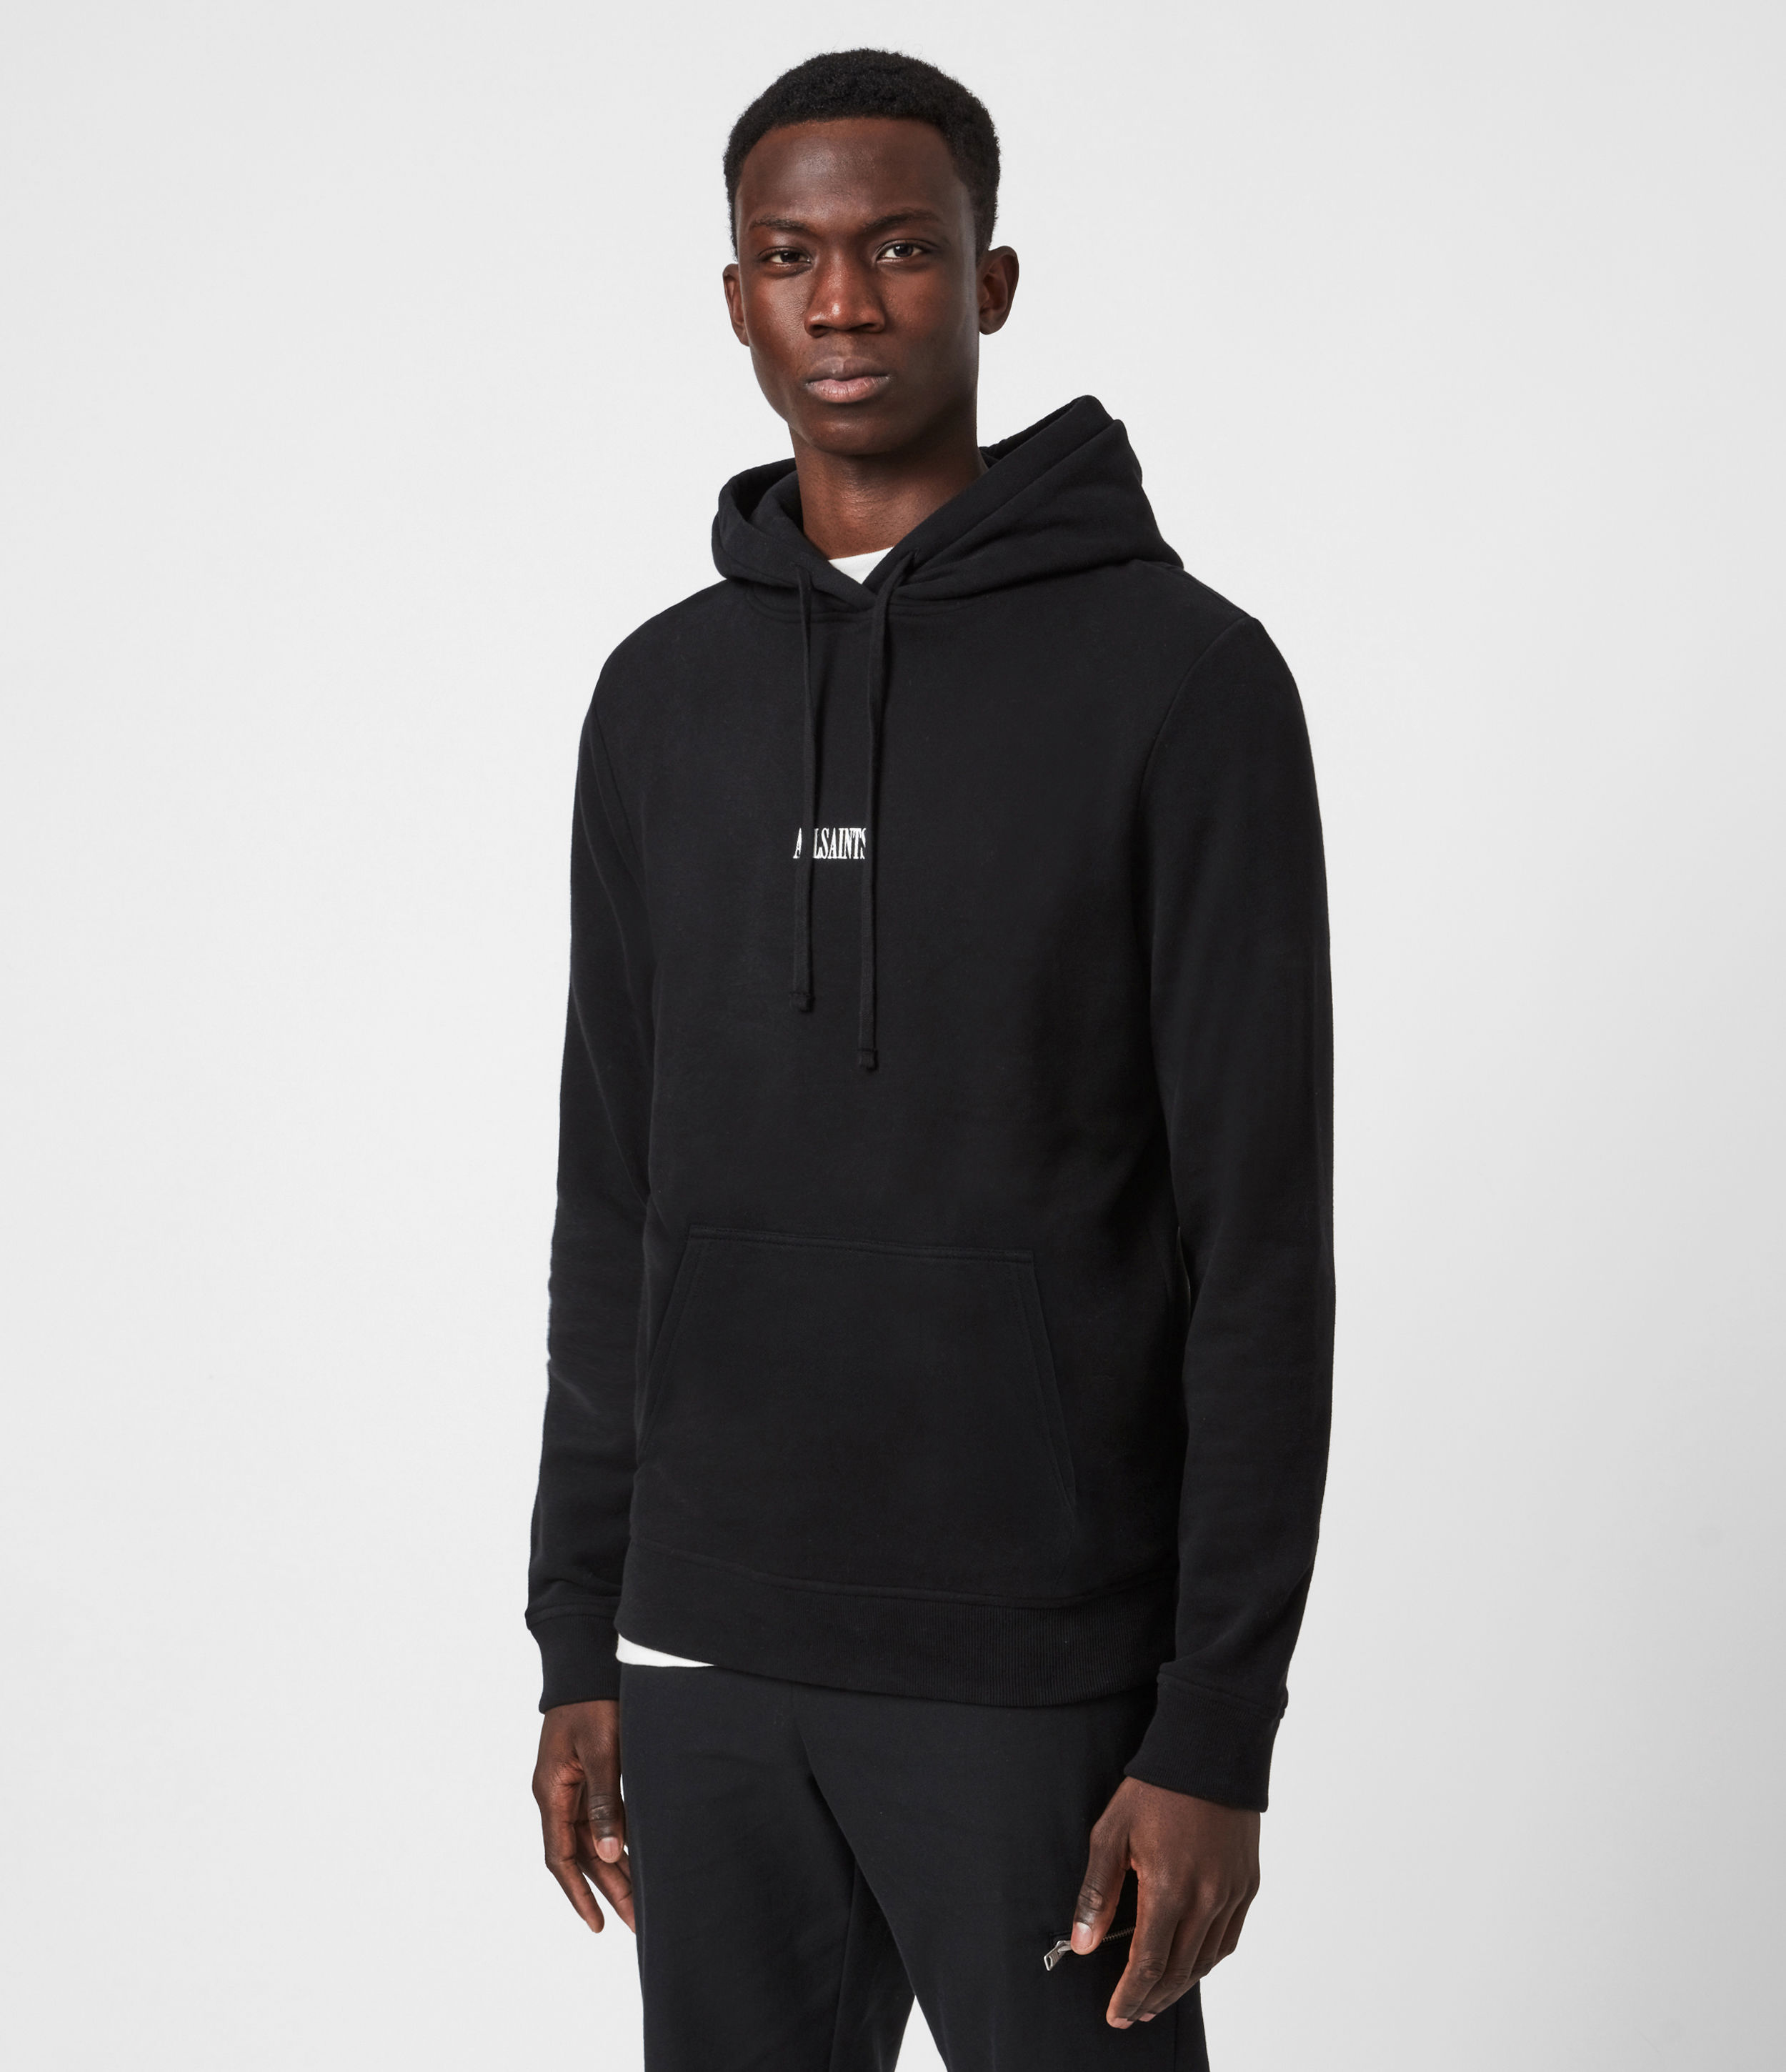 AllSaints Men's Cotton Comfortable Relaxed Fit State Pullover Hoodie, Black, Size: S